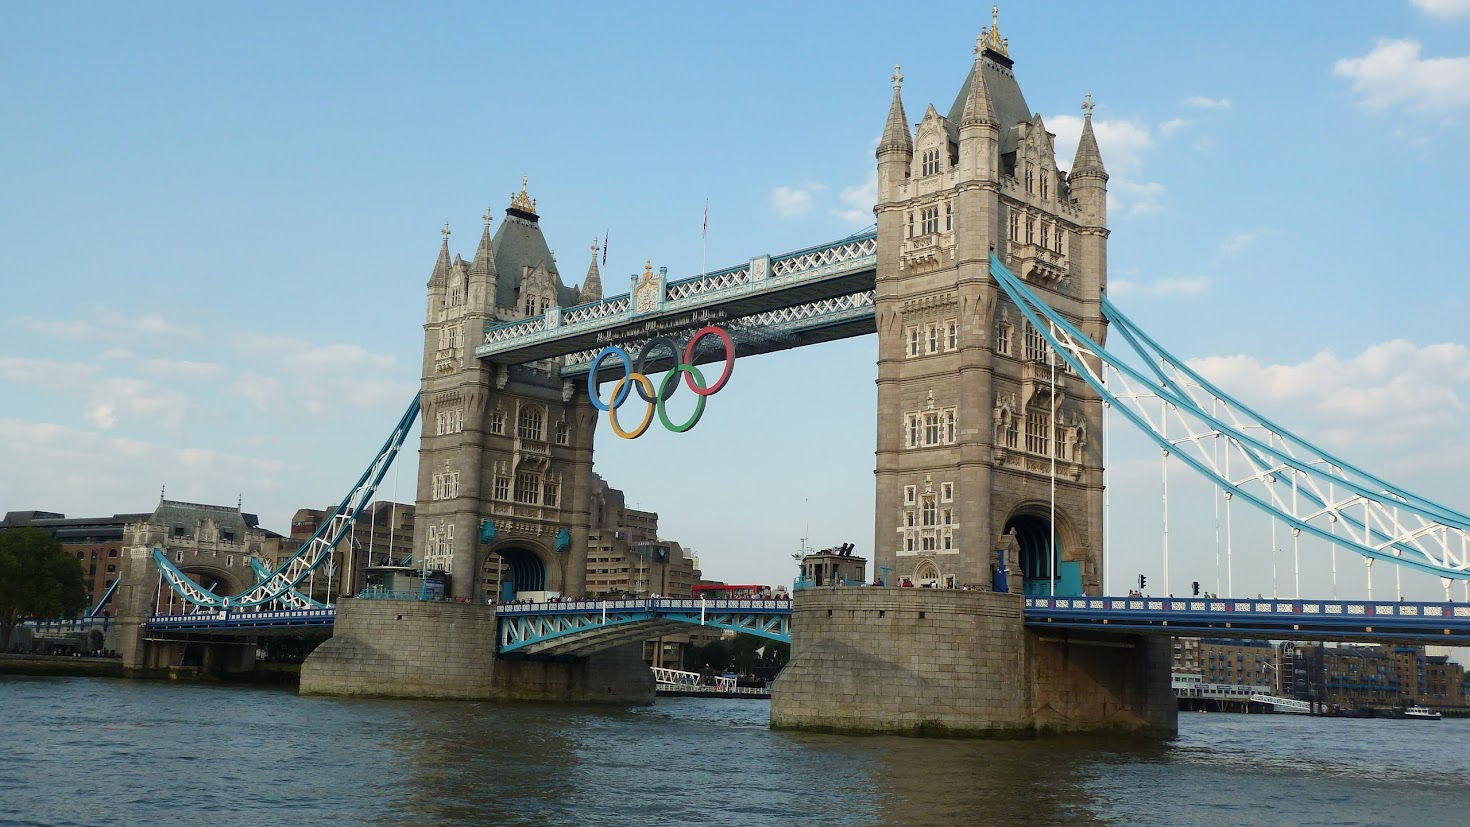 Olympic sign on Tower Bridge, London 2012